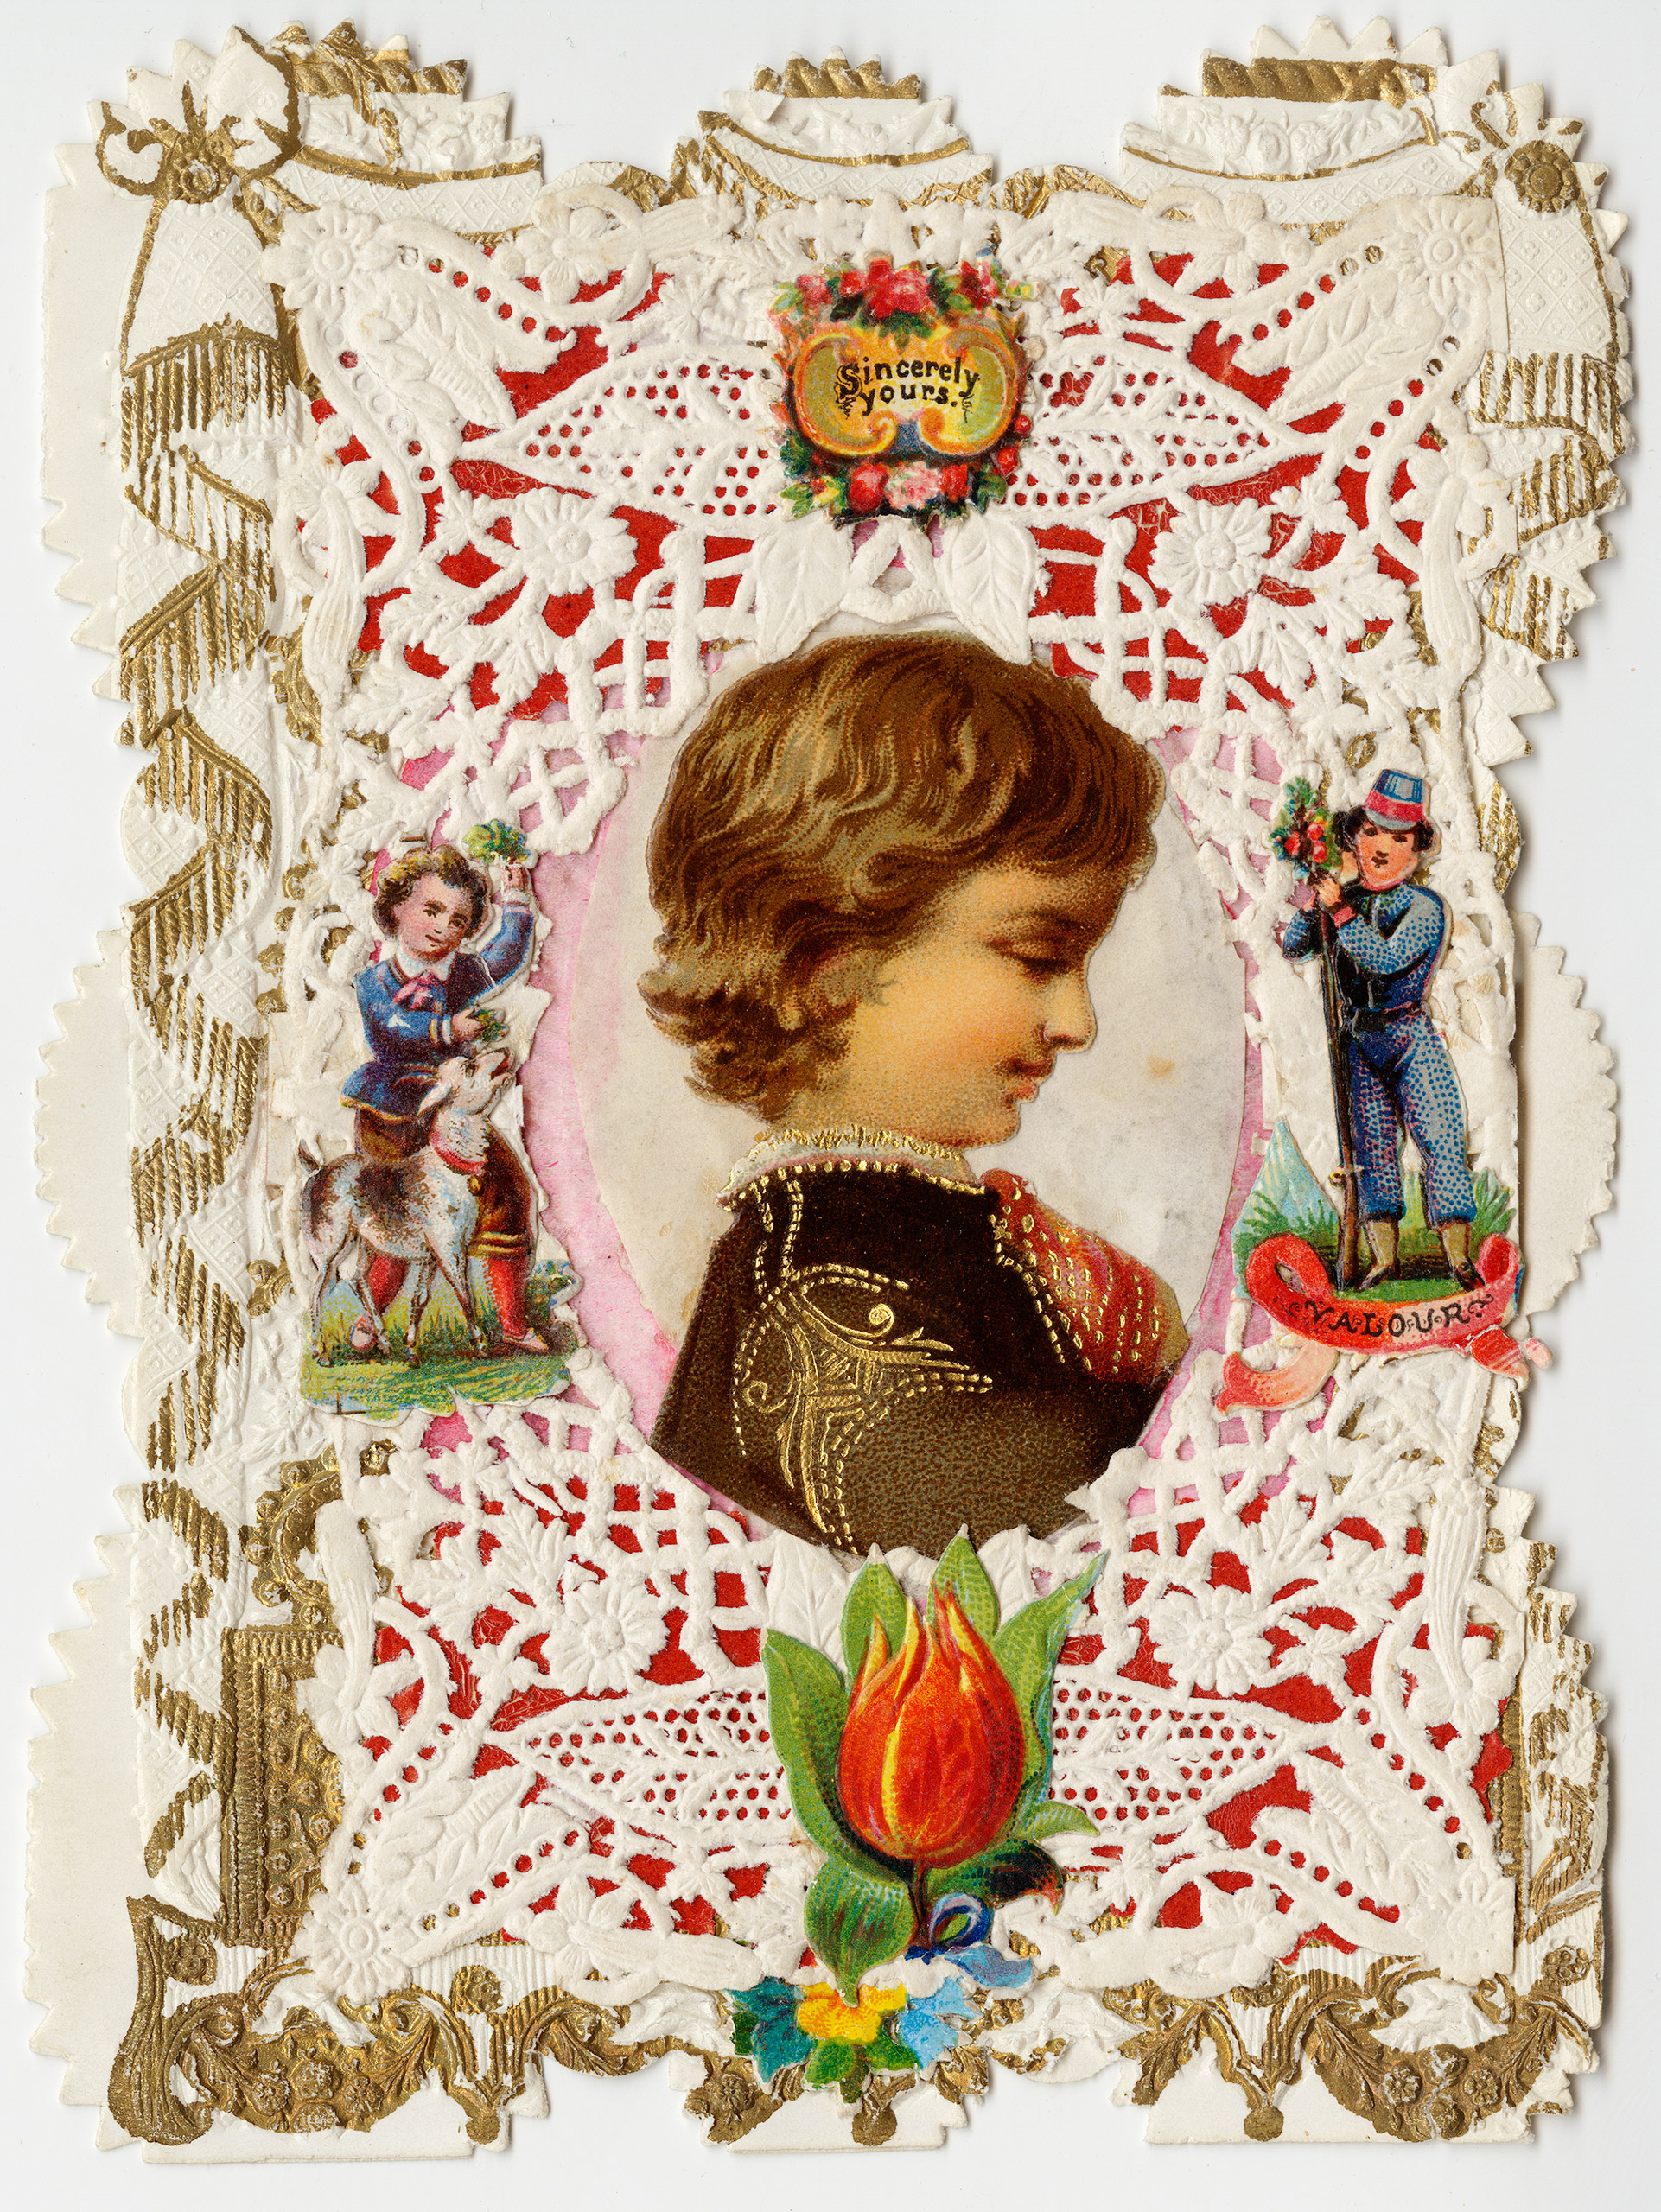 Esther Howland Valentine card,  Sincerely Yours  ca. 1870s.